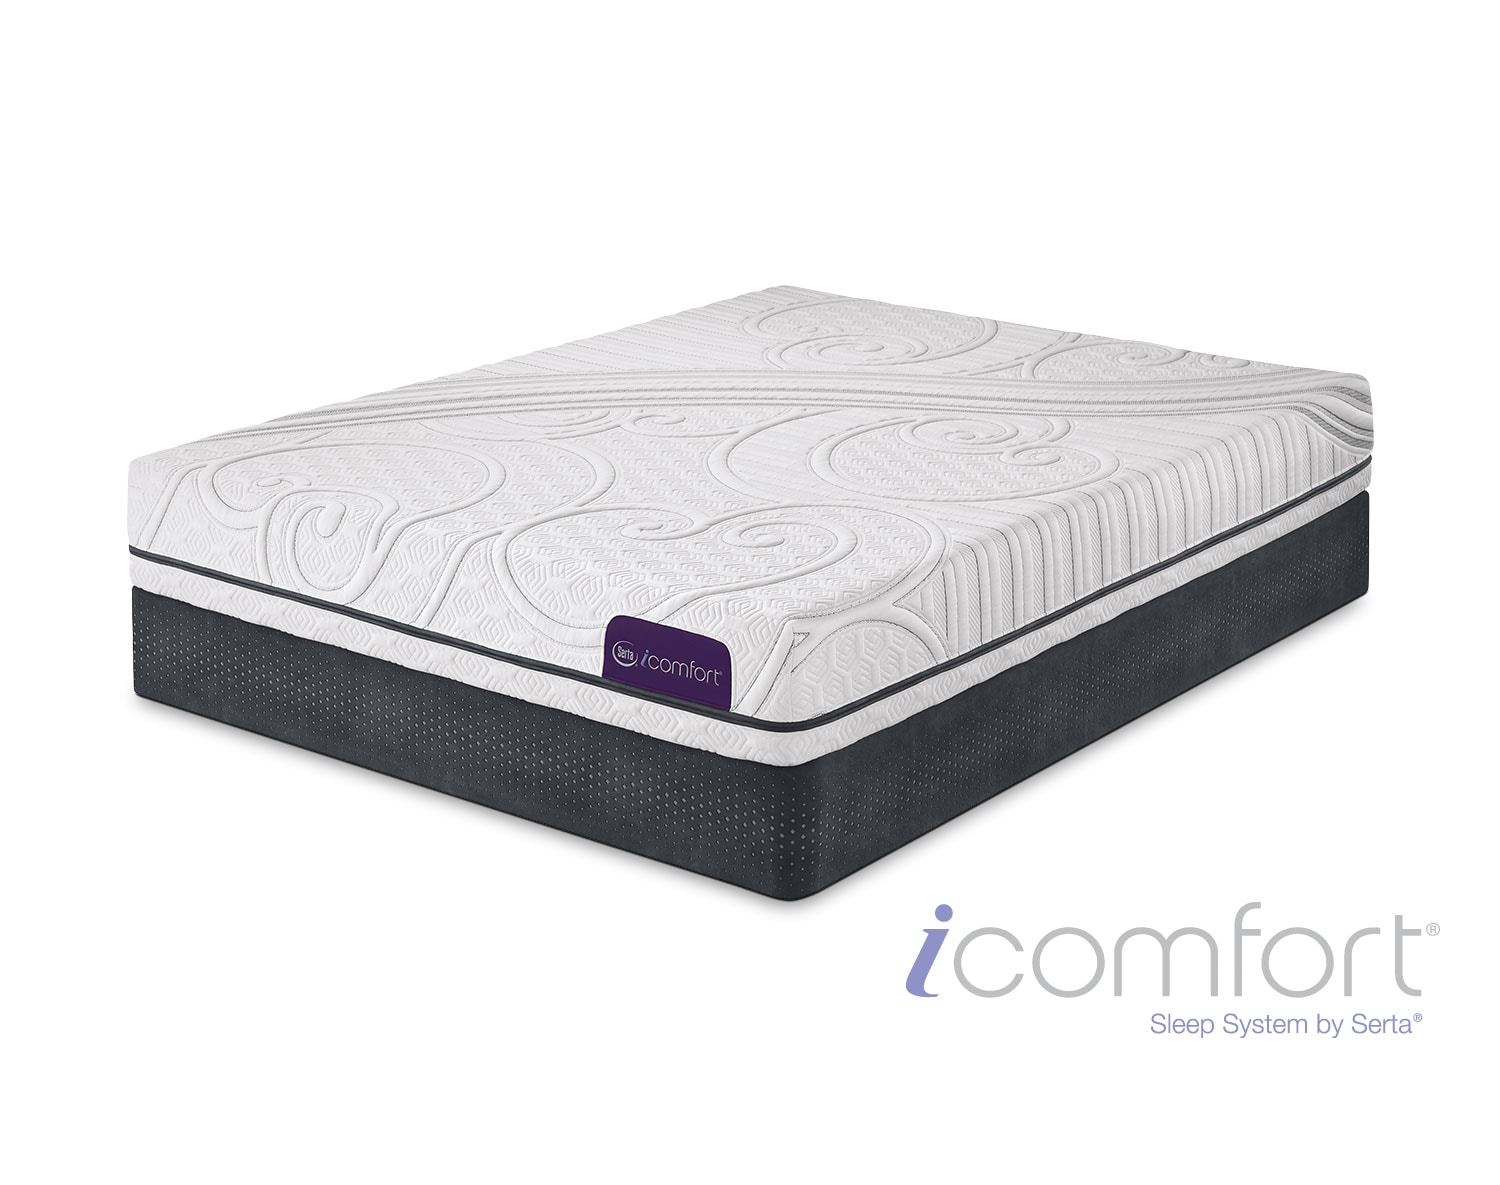 The iComfort Foresight Mattress Collection